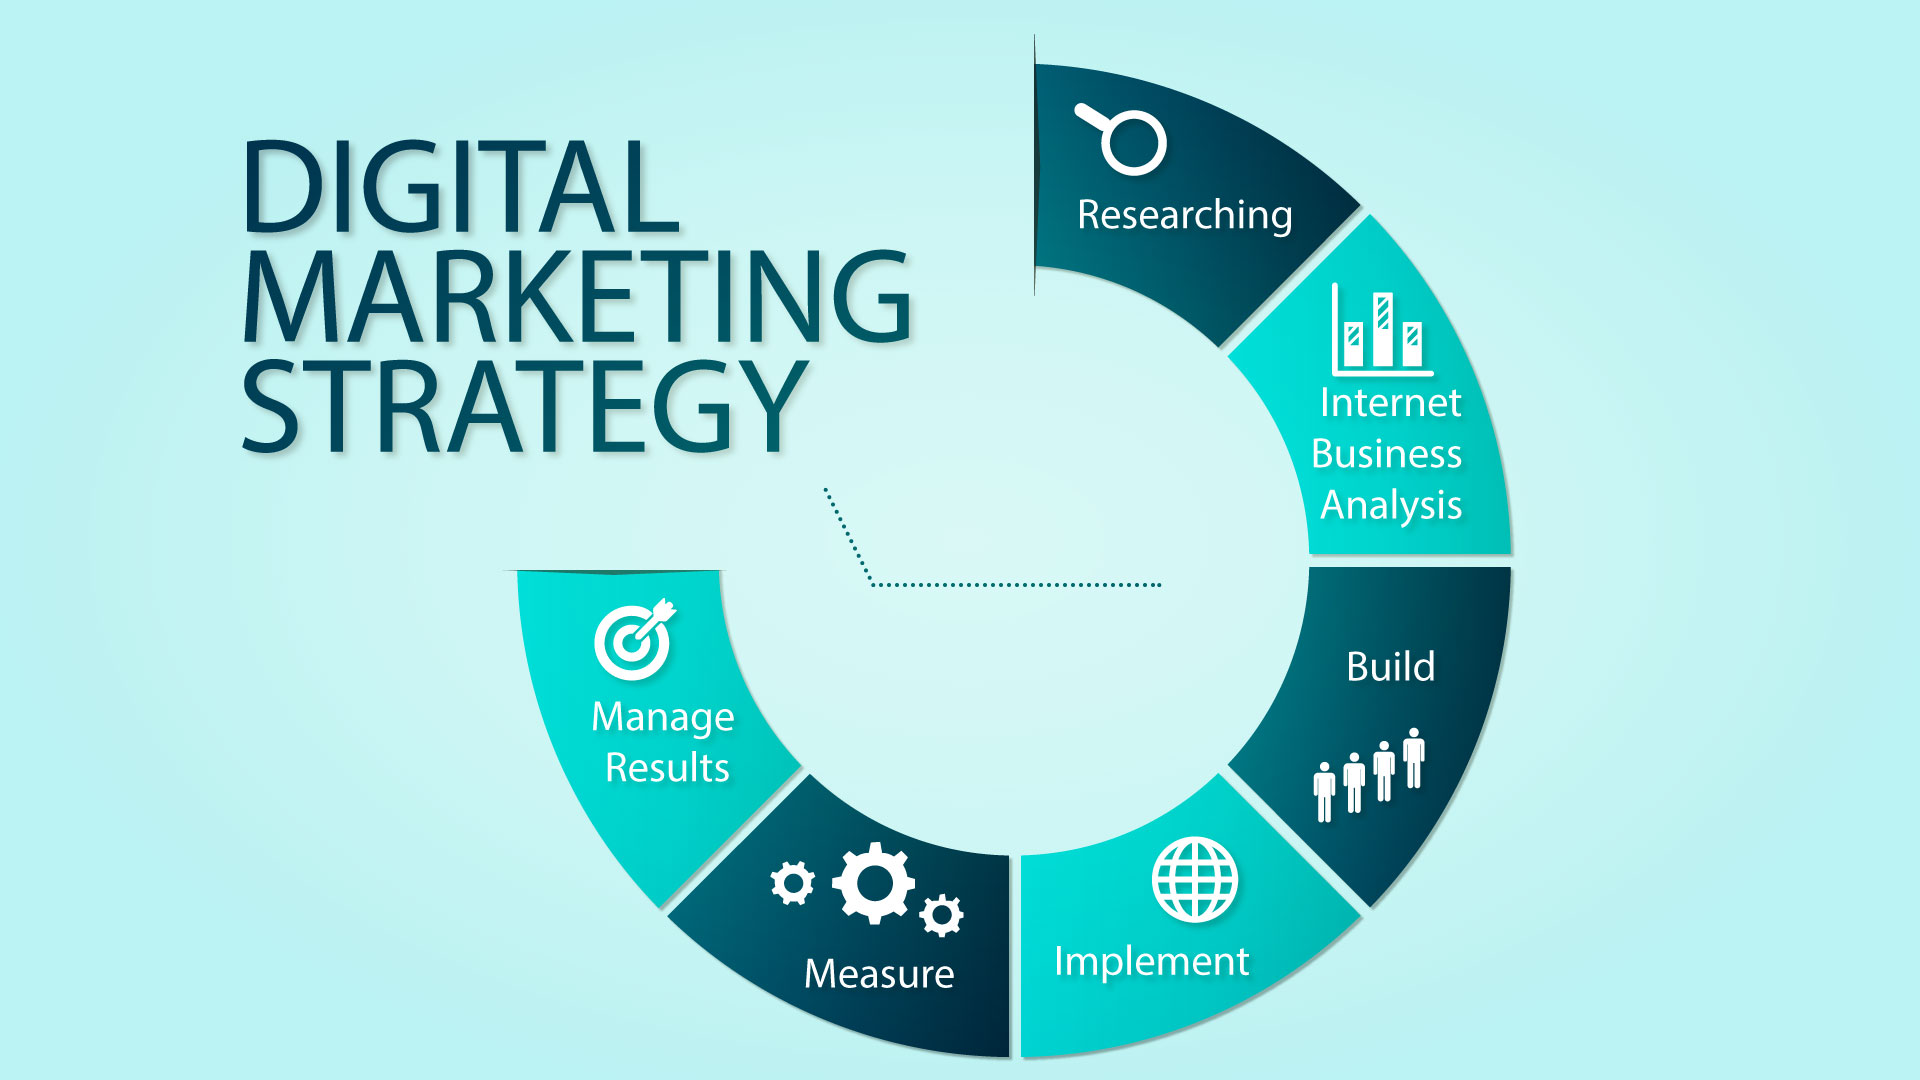 digital-marketing-strategy-.jpg